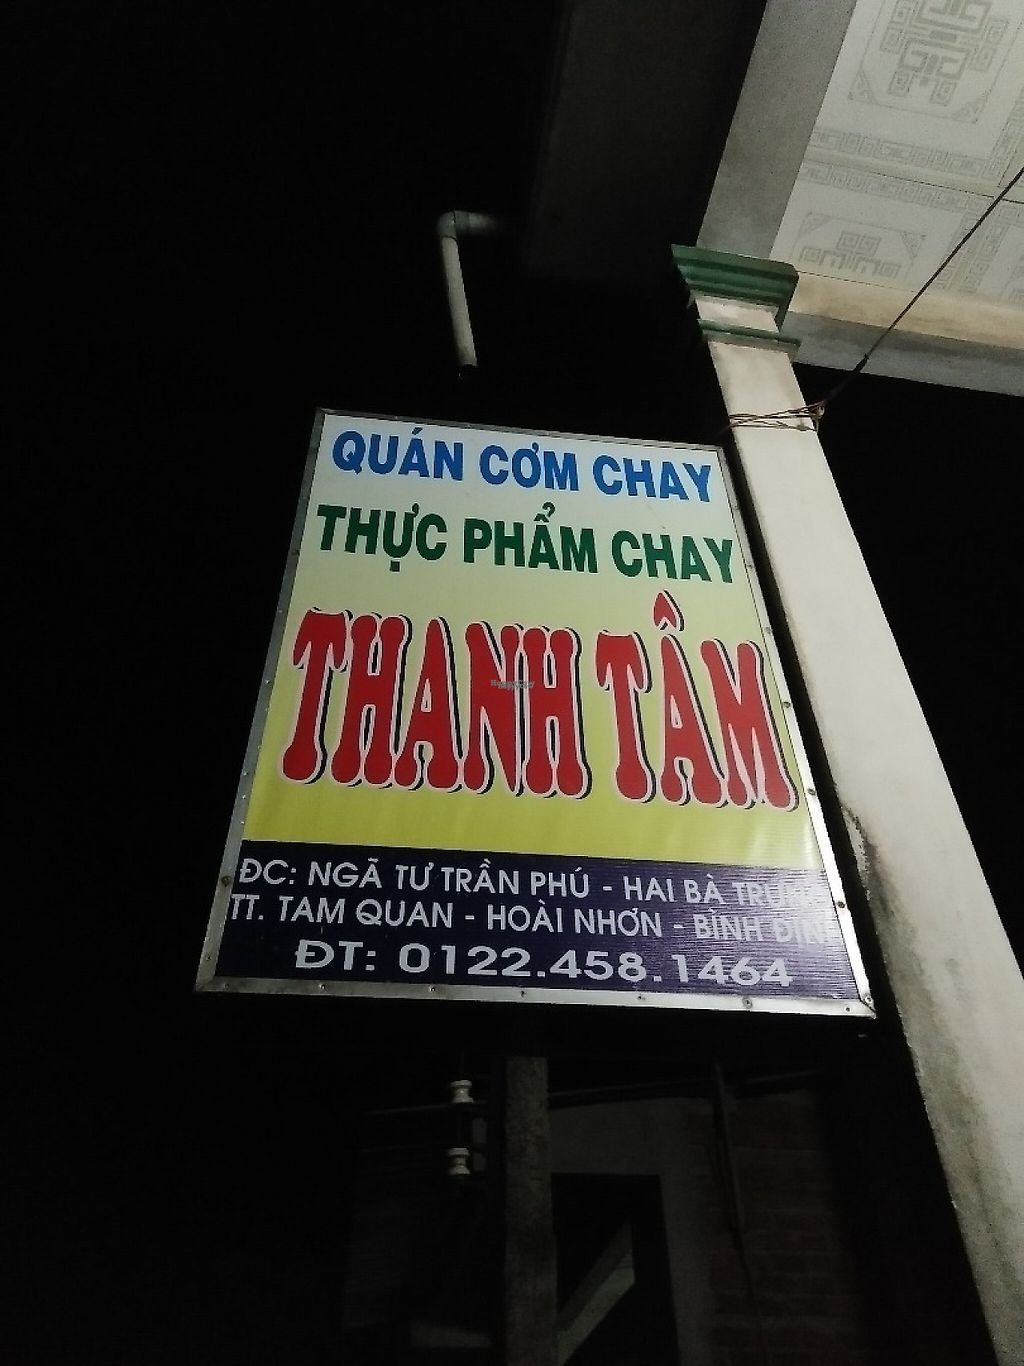 "Photo of Thanh Tam  by <a href=""/members/profile/NickKh%C3%A1nh"">NickKhánh</a> <br/>Sign out front <br/> November 13, 2016  - <a href='/contact/abuse/image/82635/189272'>Report</a>"